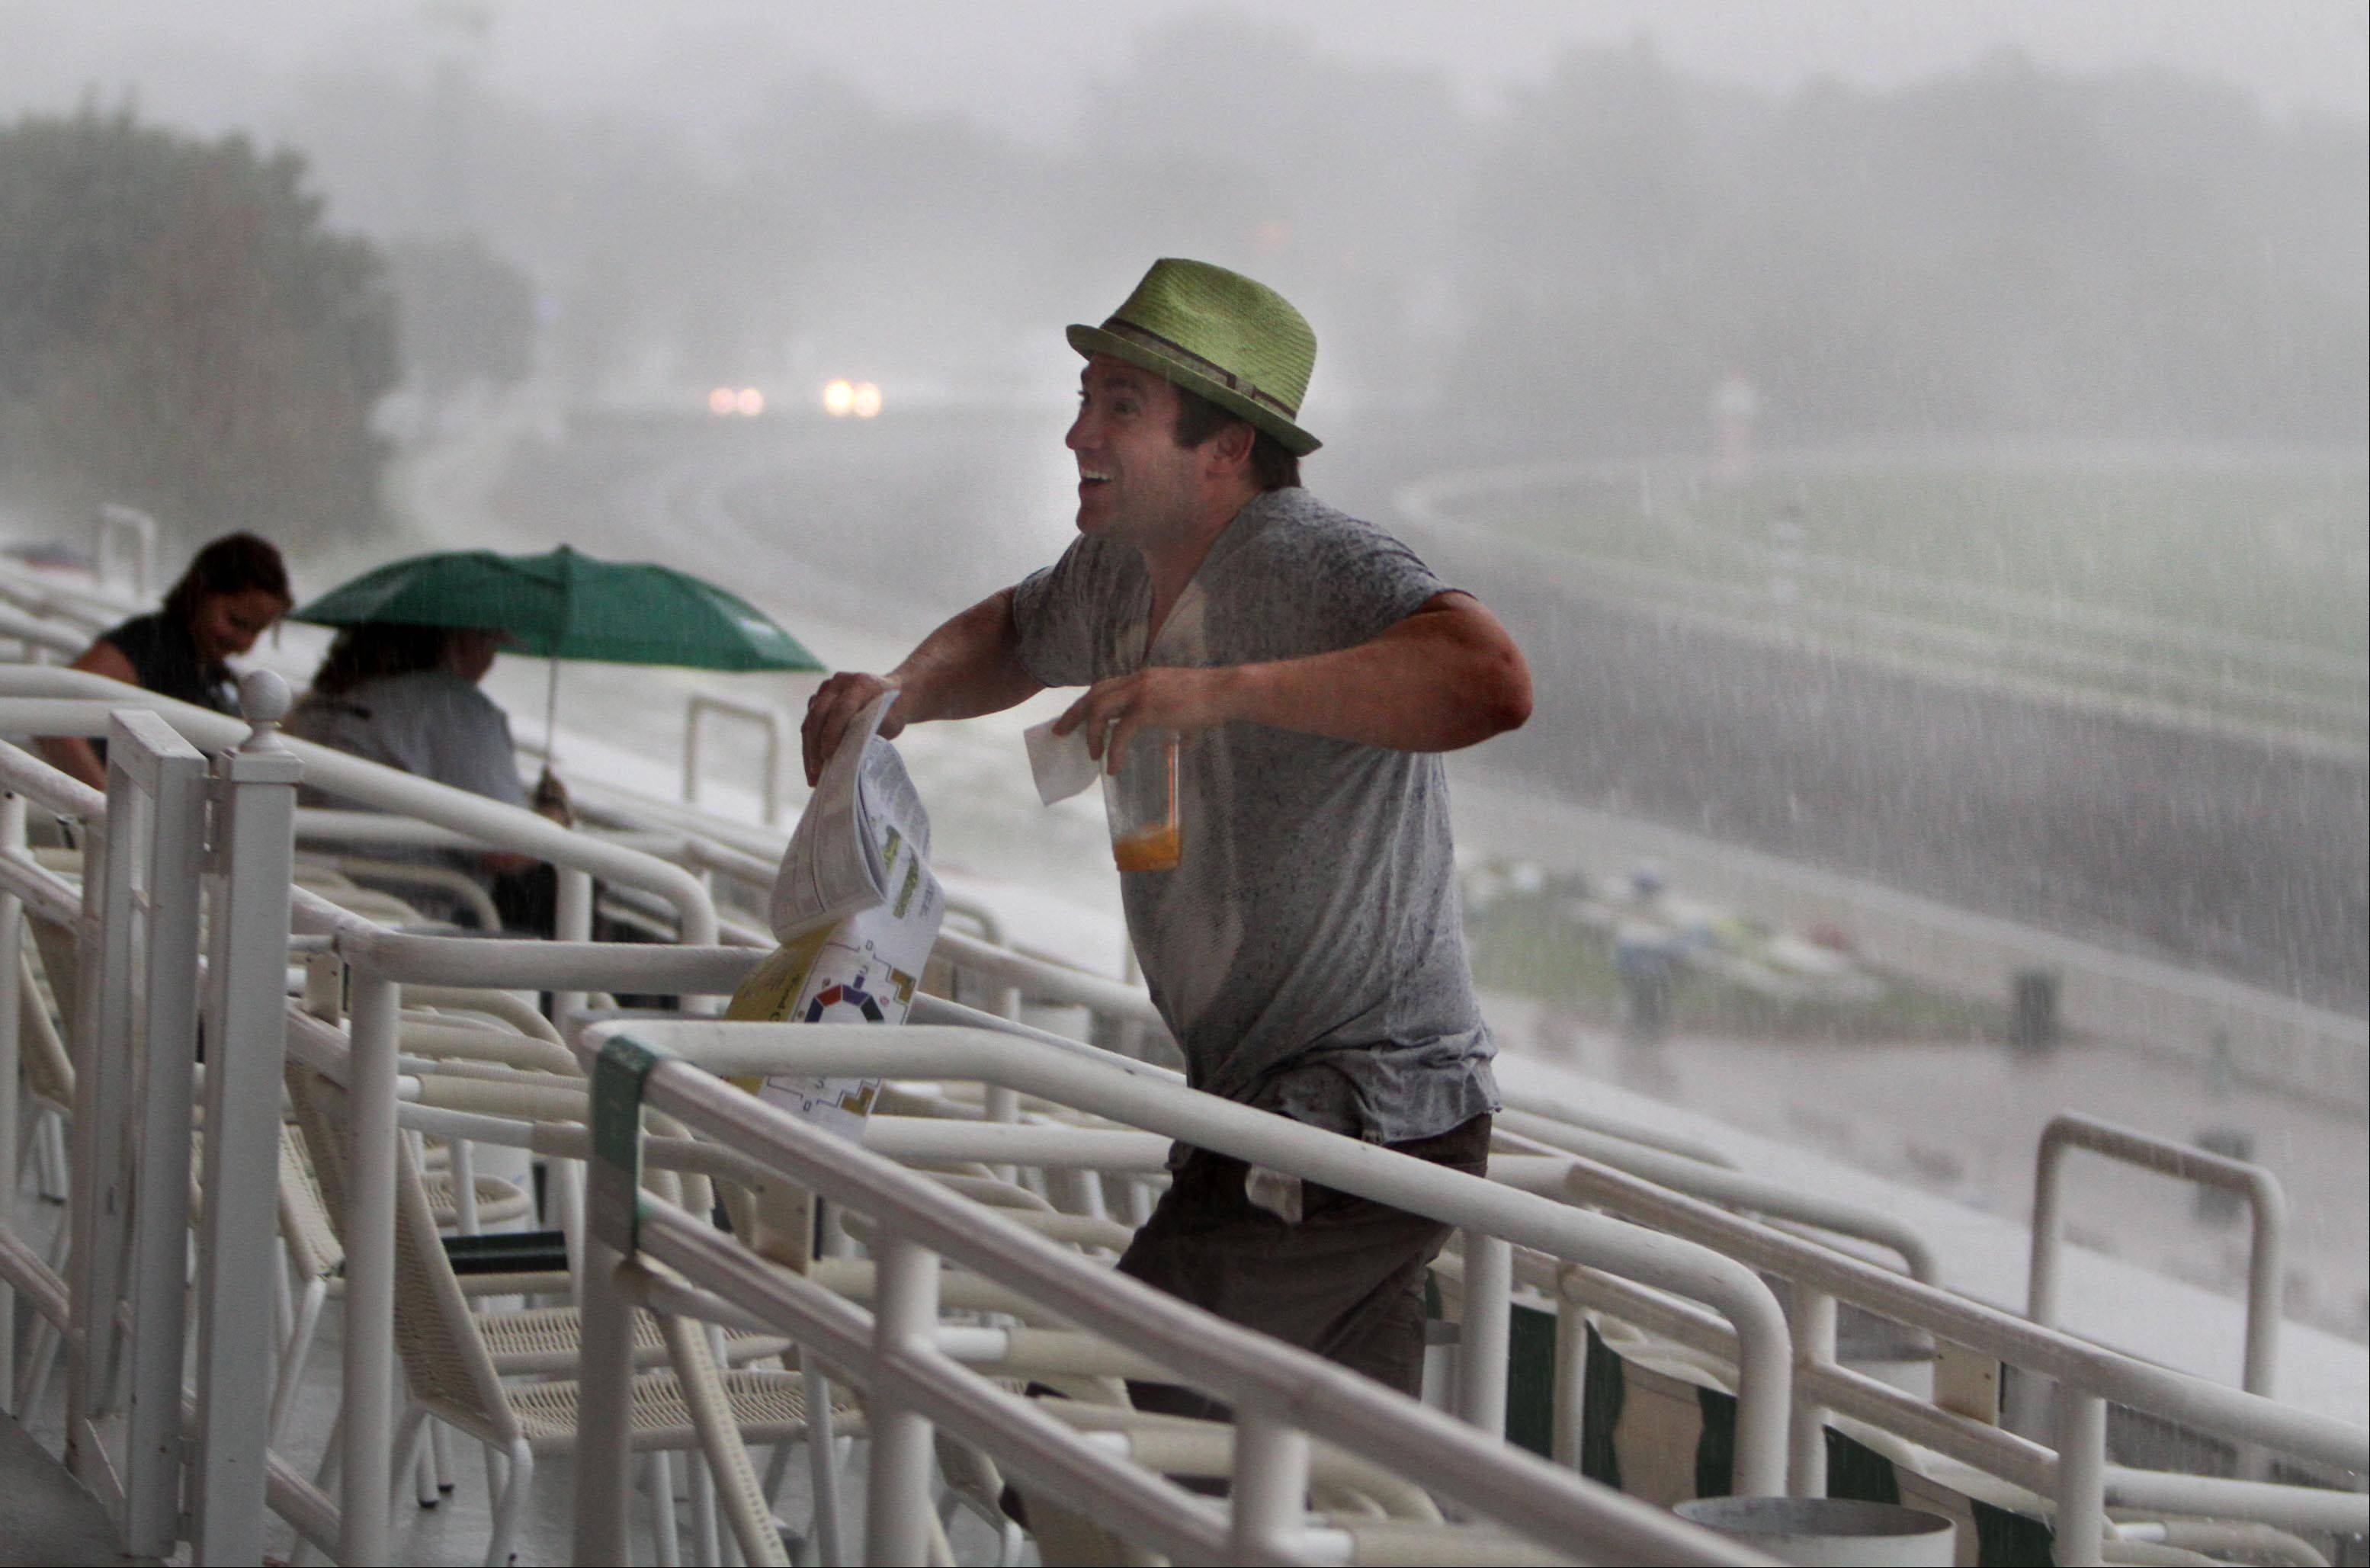 Rory McKenna of Arlington Heights runs for cover as it rains heavy before the Arlington Million at Arlington Park on Saturday.